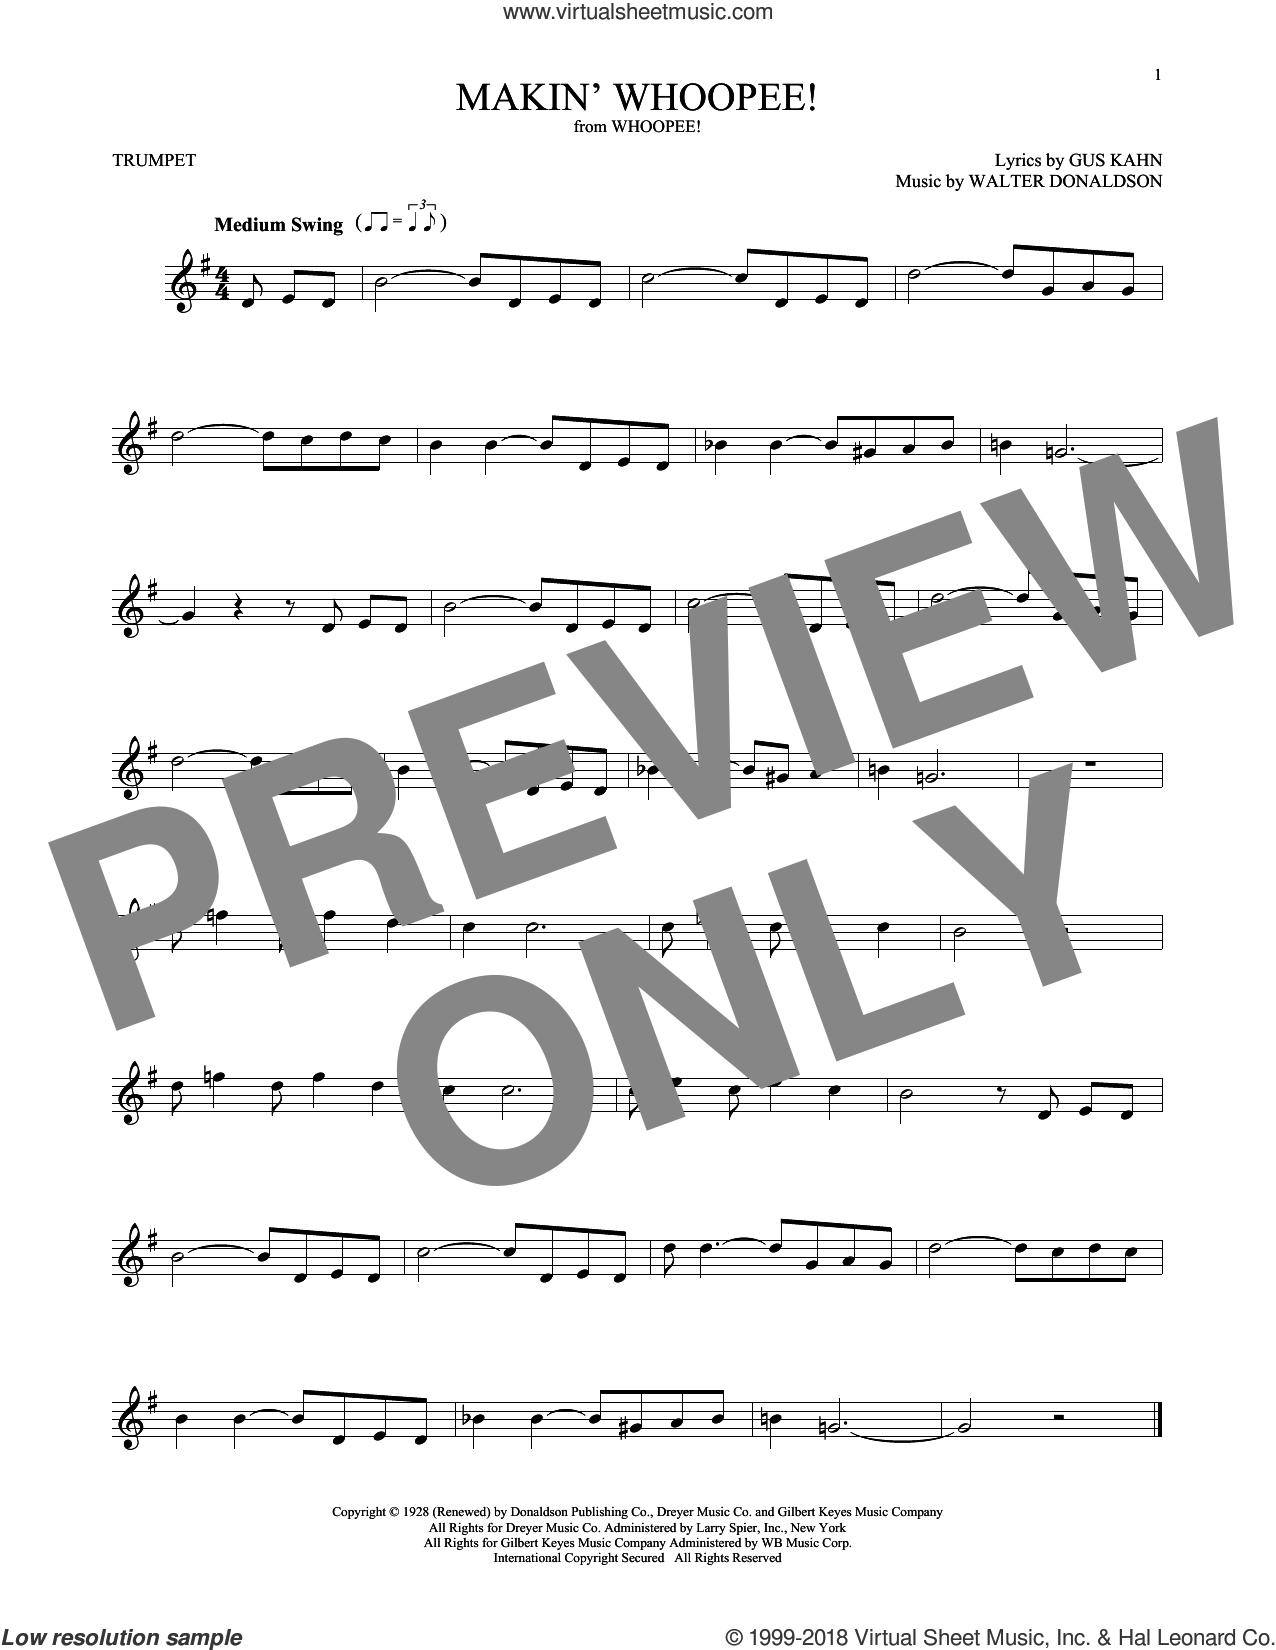 Makin' Whoopee! sheet music for trumpet solo by Gus Kahn, John Hicks and Walter Donaldson, intermediate skill level